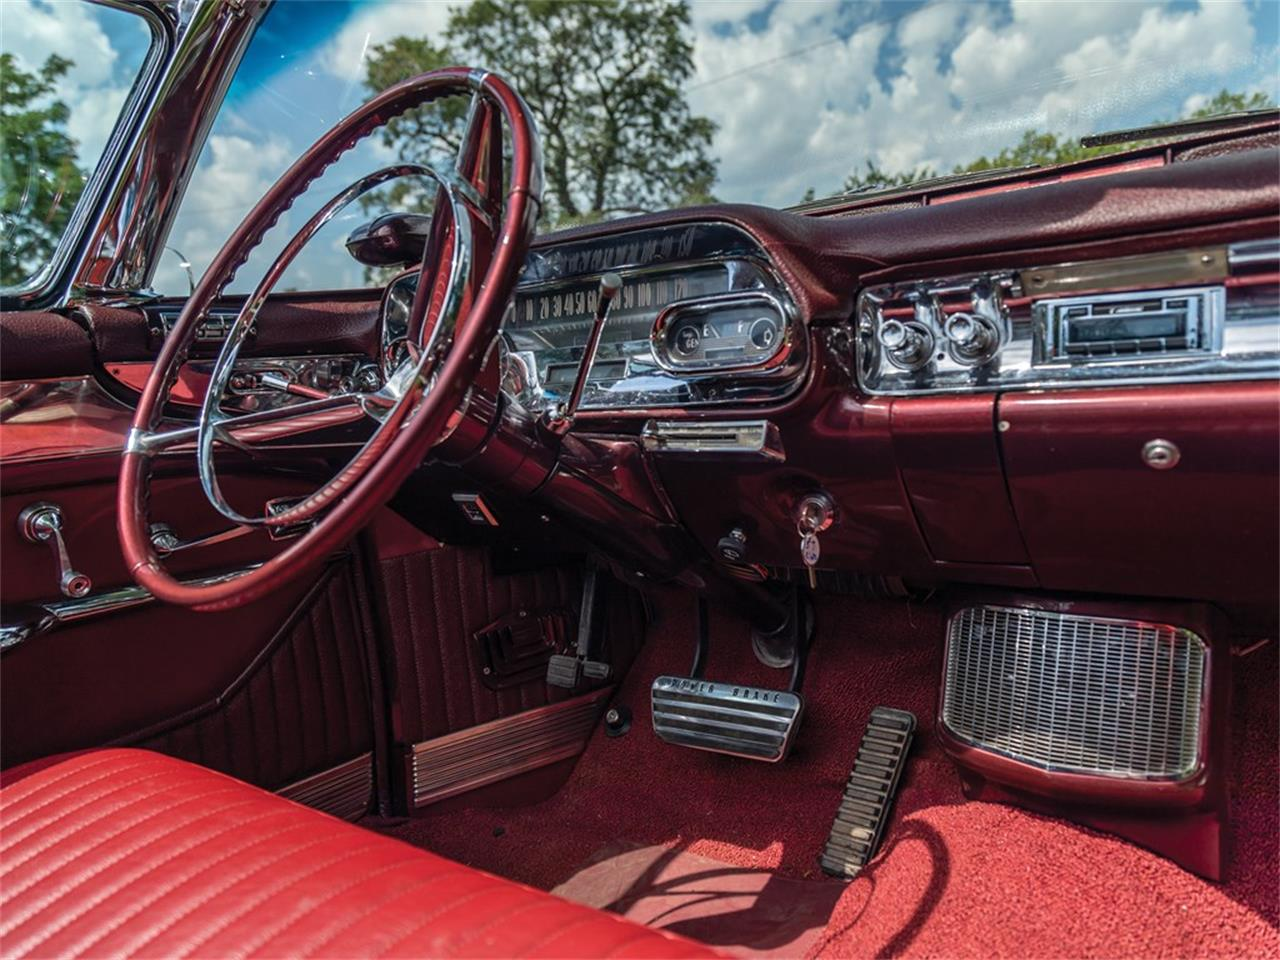 1957 Cadillac Eldorado Biarritz for sale in Auburn, IN – photo 8